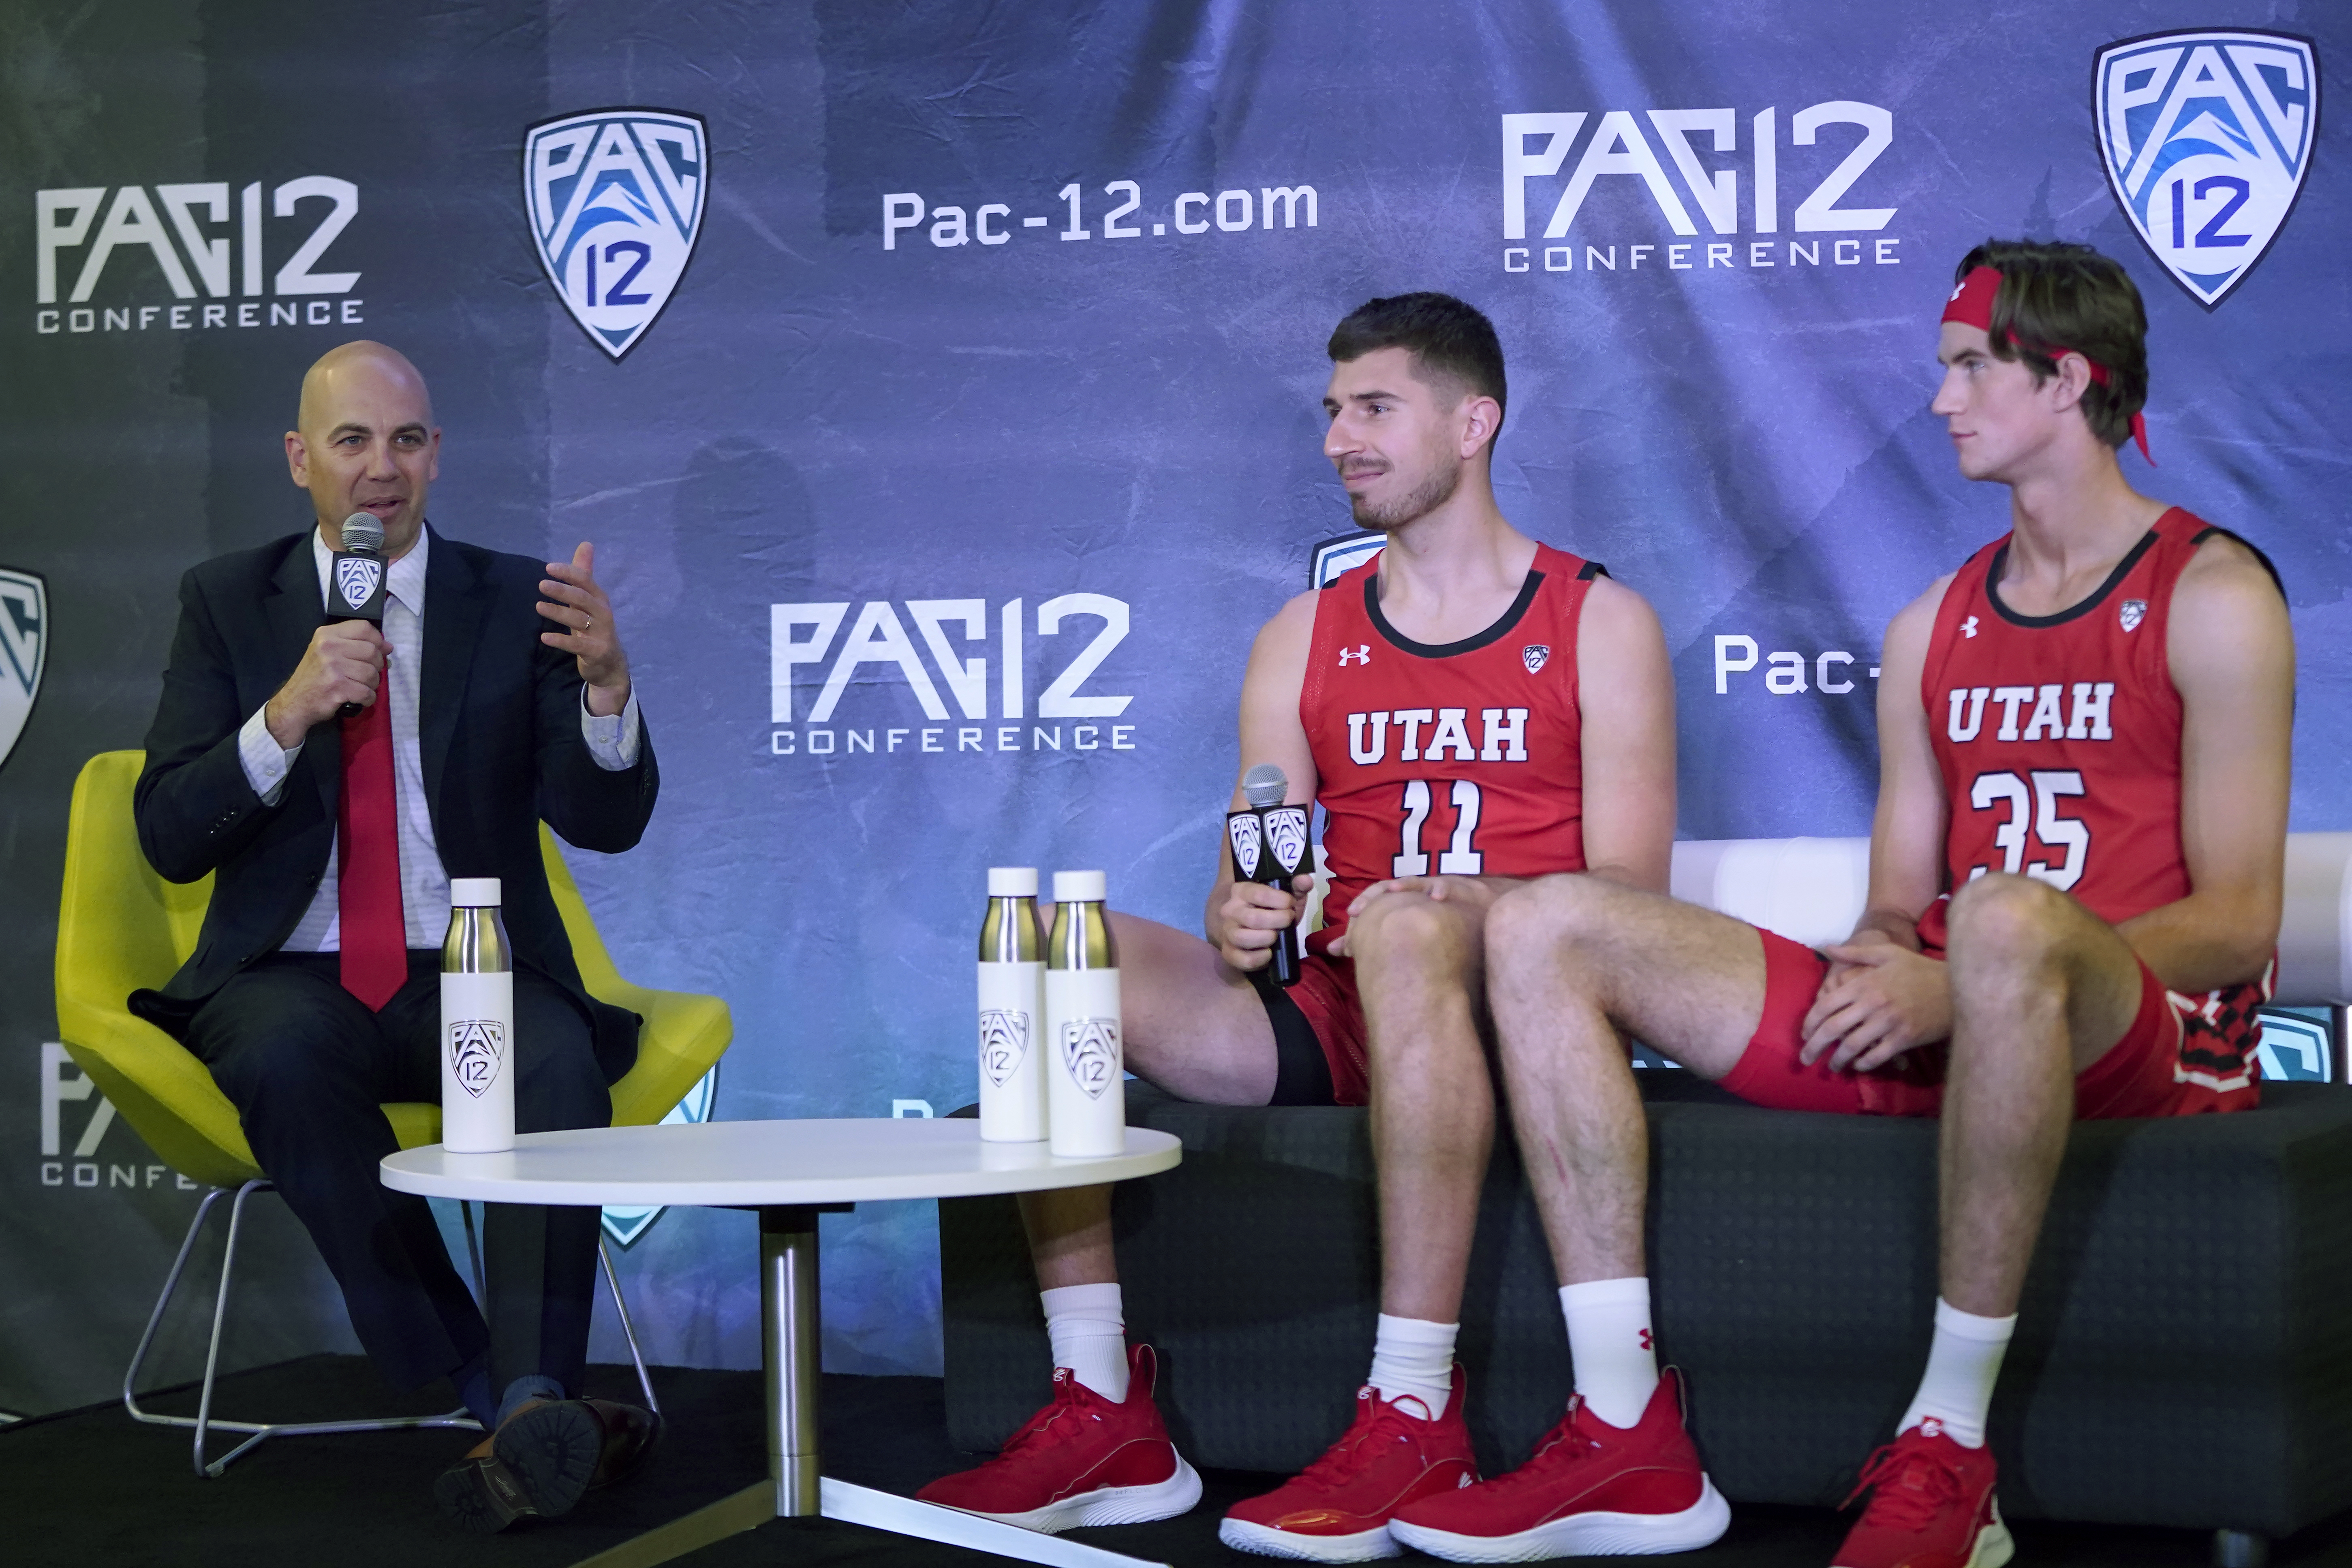 Utah coach Craig Smith, left, speaks next to Riley Battin, middle, and Branden Carlson during Pac-12 media day.